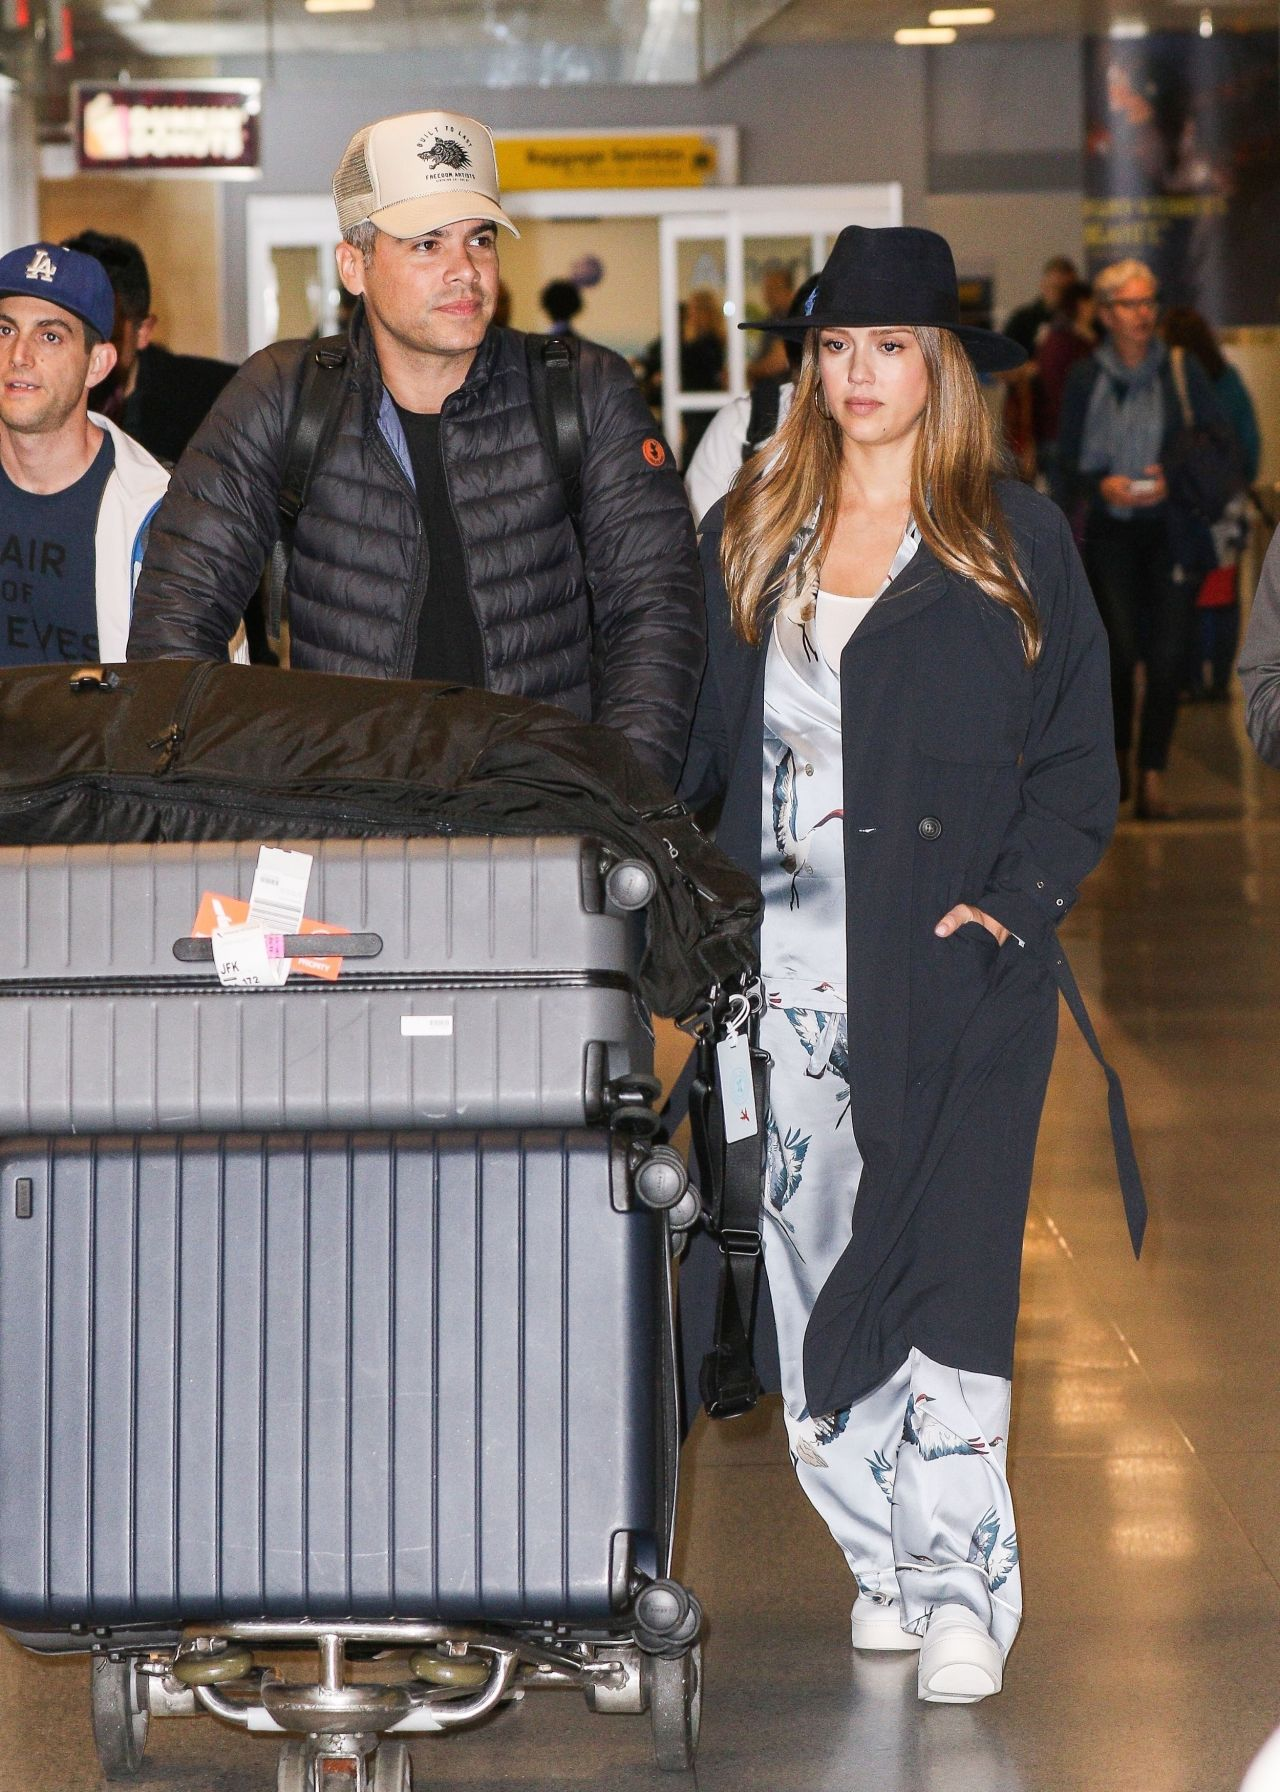 http://celebmafia.com/wp-content/uploads/2017/10/jessica-alba-with-her-husband-at-the-jfk-airport-in-new-york-20-23-2017-3.jpg